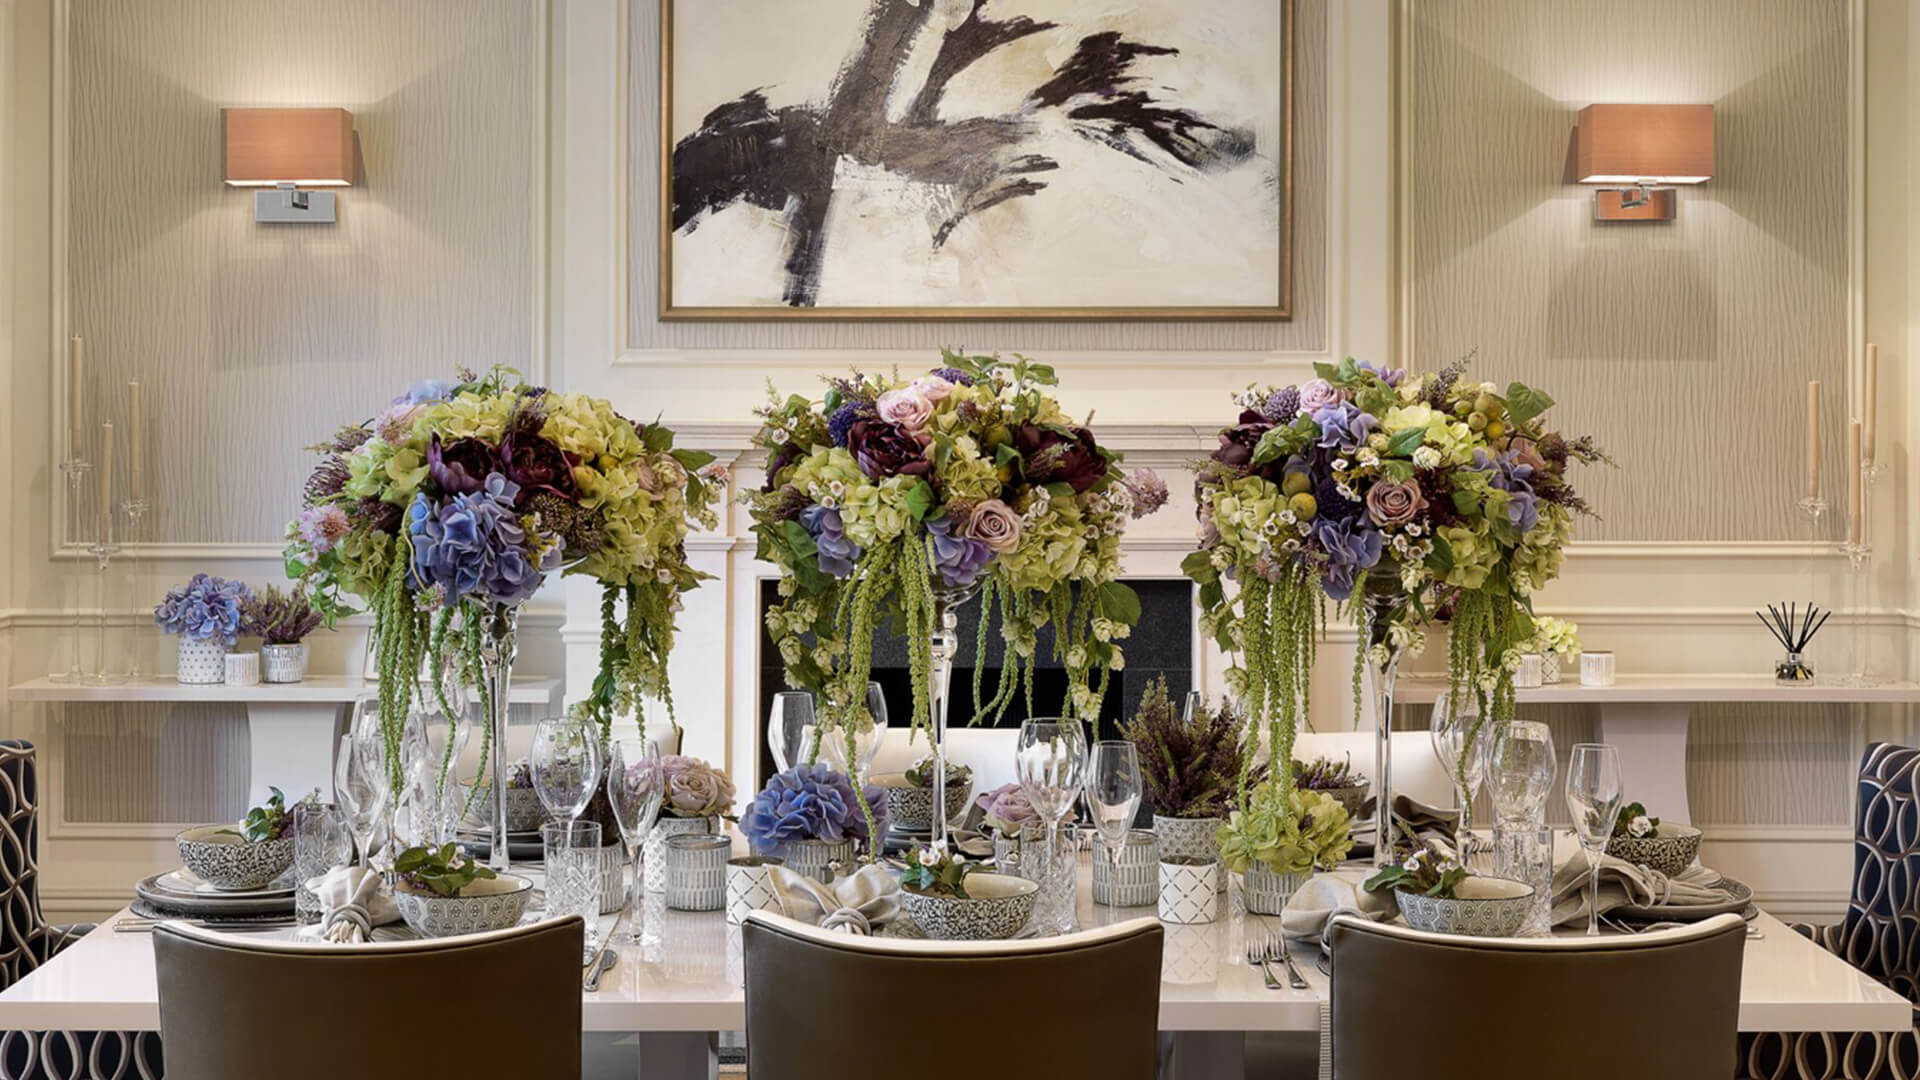 Dining room as decorated by Moska Design and Style with flowers and ceramic crockery